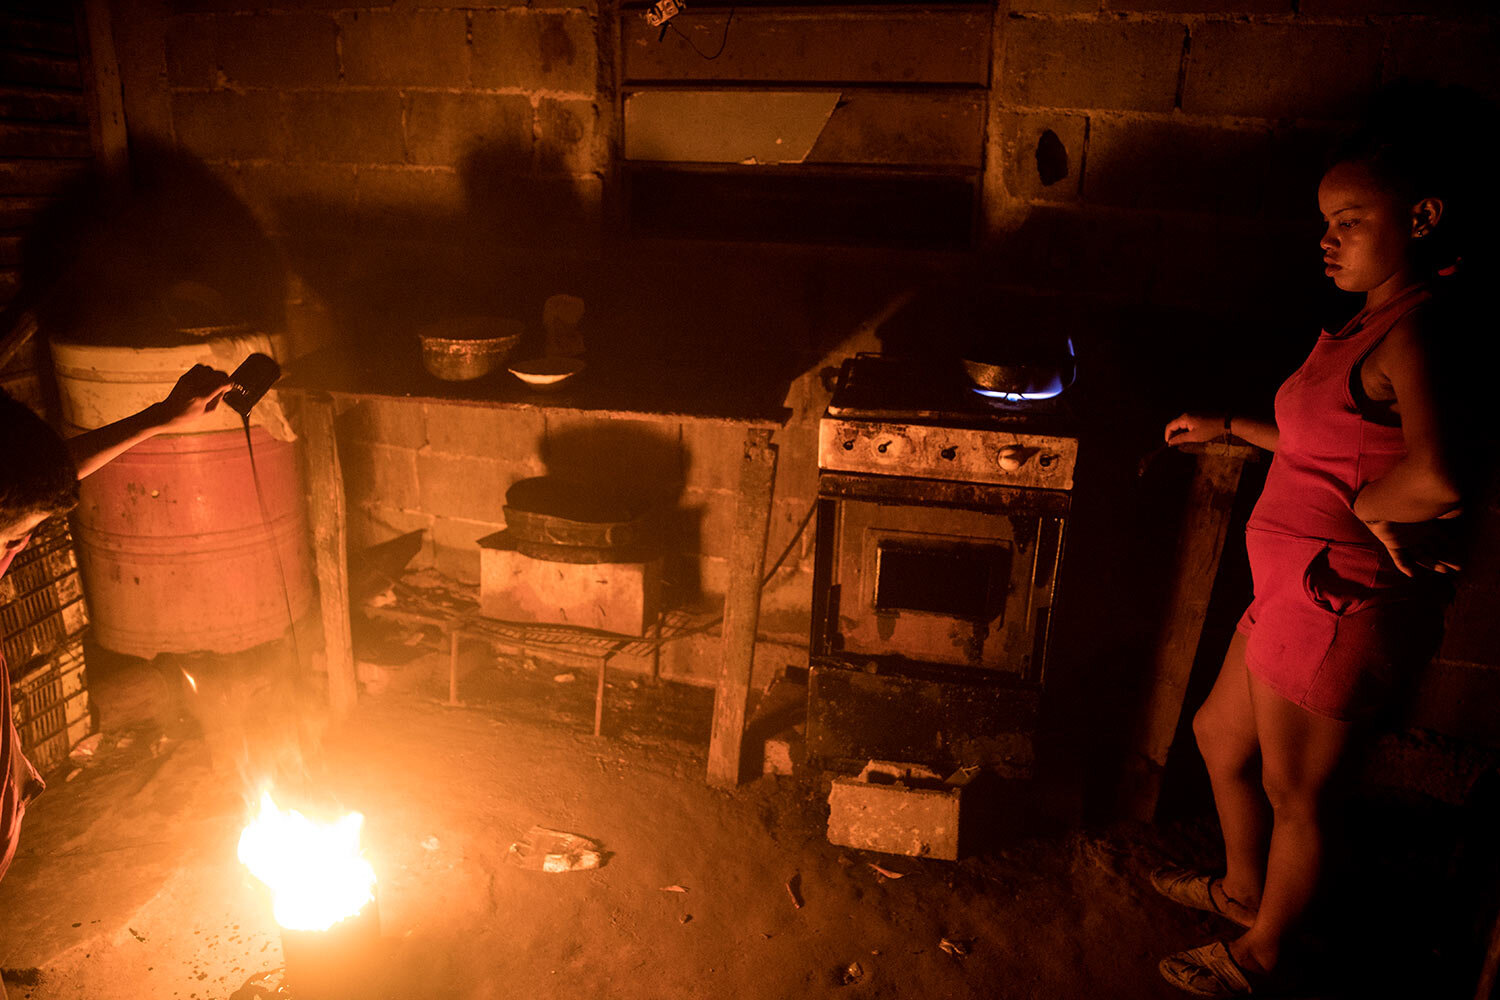 """During a blackout, oil is added to a bucket of fire, known as a """"mechurrio,"""" which is the name for the flares that burn excess gas on top of oil wells, inside a home where Fabiola Elizalzabal cooks dinner in Cabimas, Venezuela, May 16, 2019. (AP Photo/Rodrigo Abd)"""